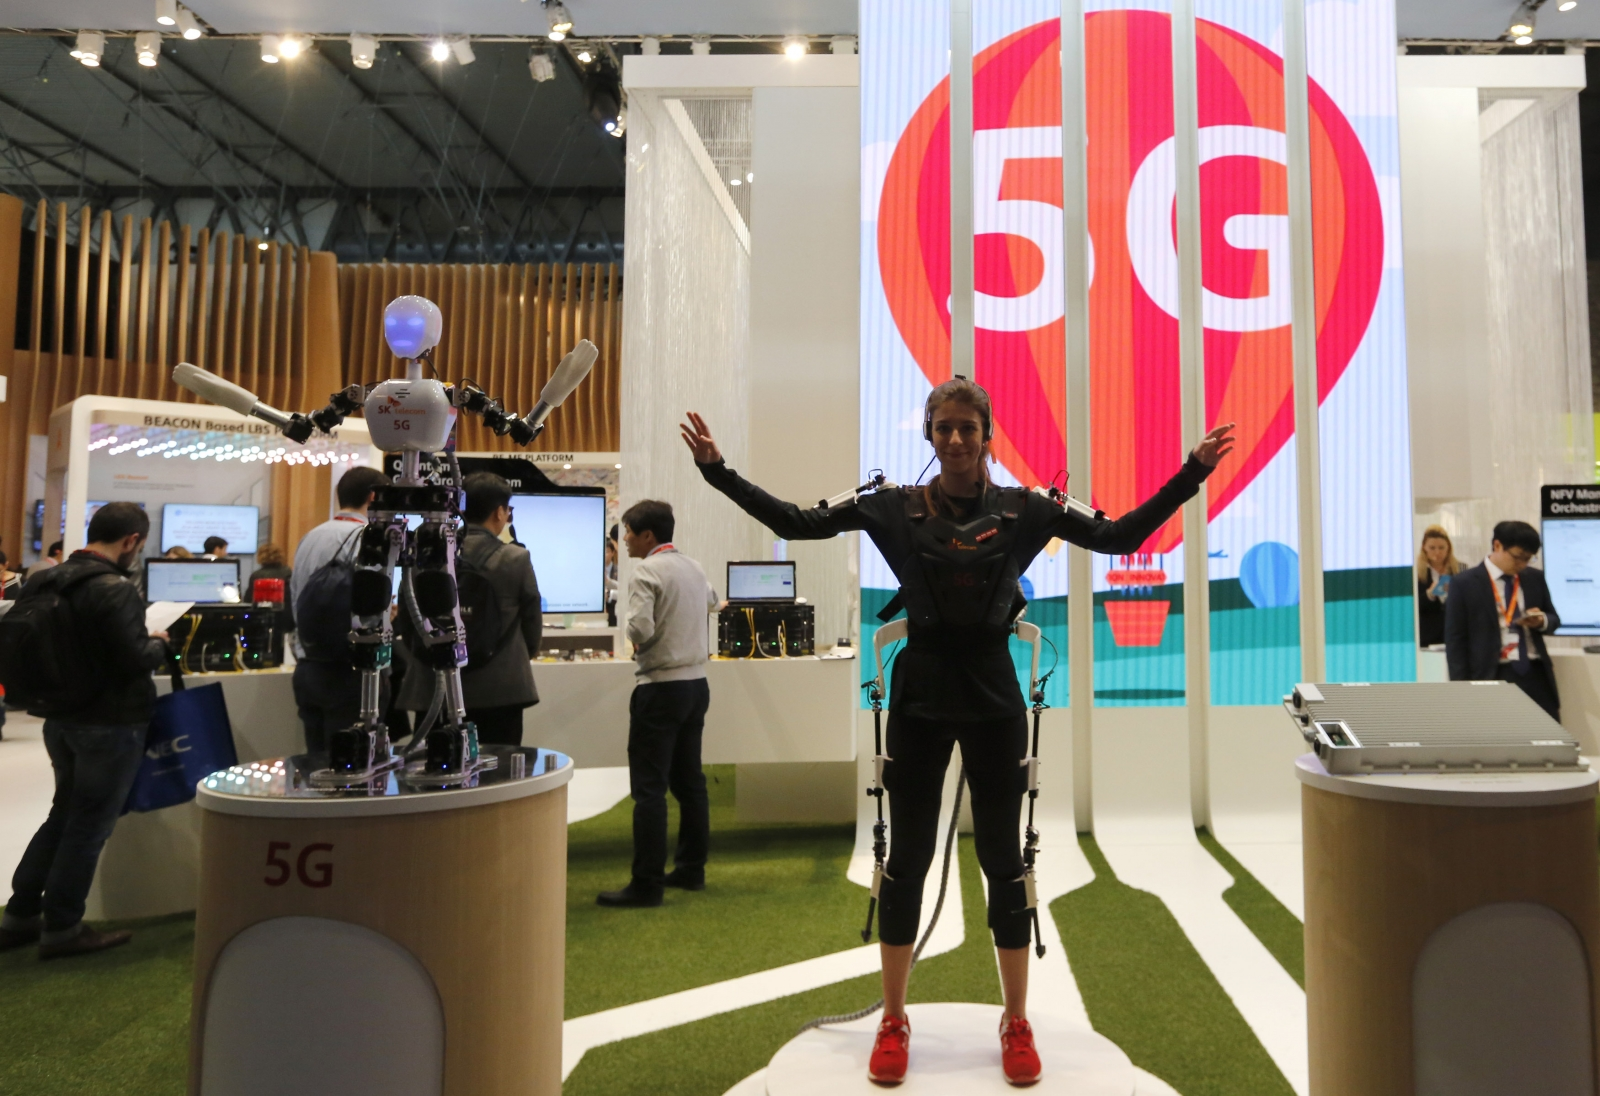 Samsung aims to be a top-three player in 5G mobile networks business